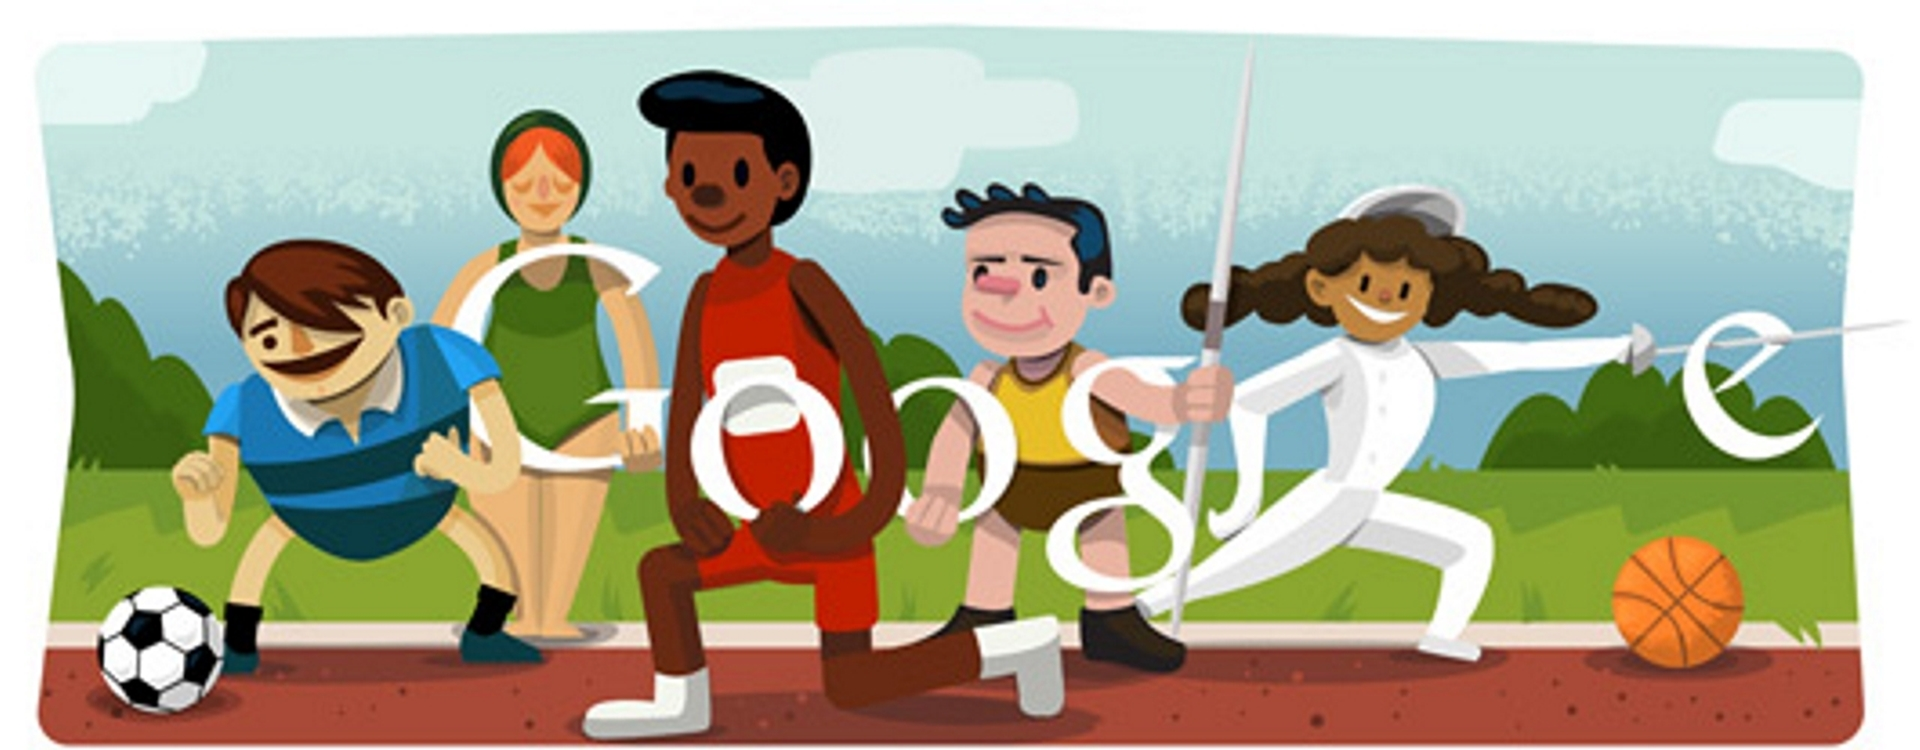 London 2012 Google Doodles